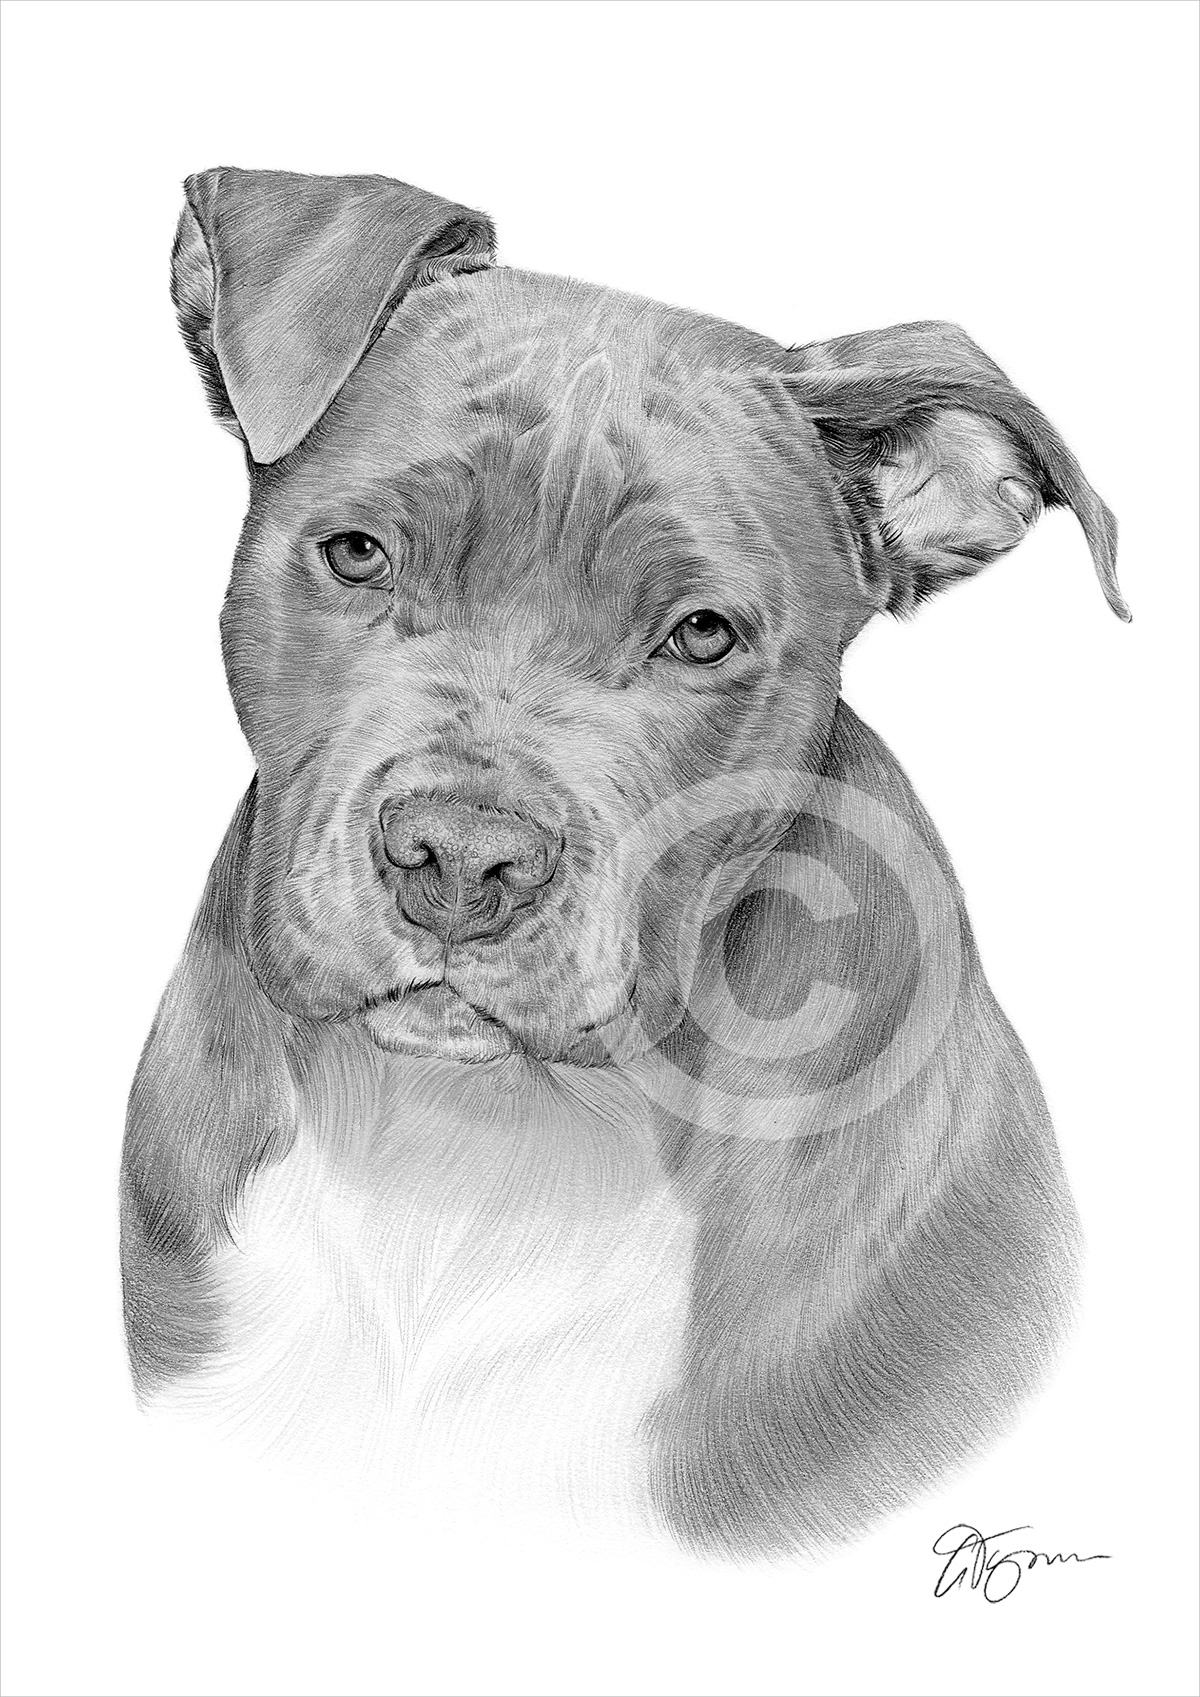 American Pit Bull Terrier pencil drawing by artist Gary Tymon